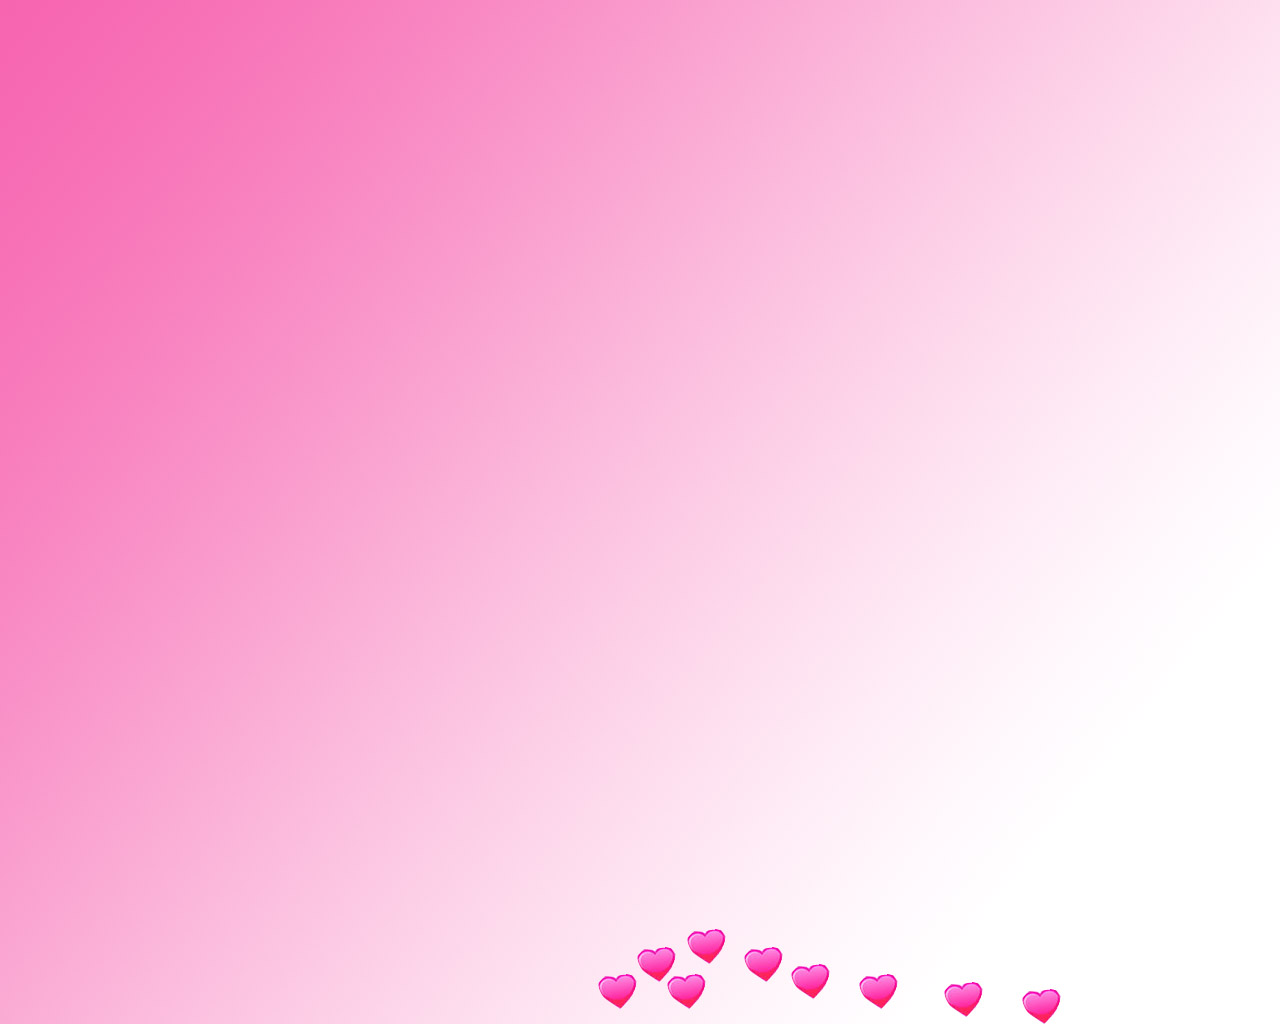 Pink Heart Wallpaper 8763 Hd Wallpapers in Love   Imagesci 1280x1024